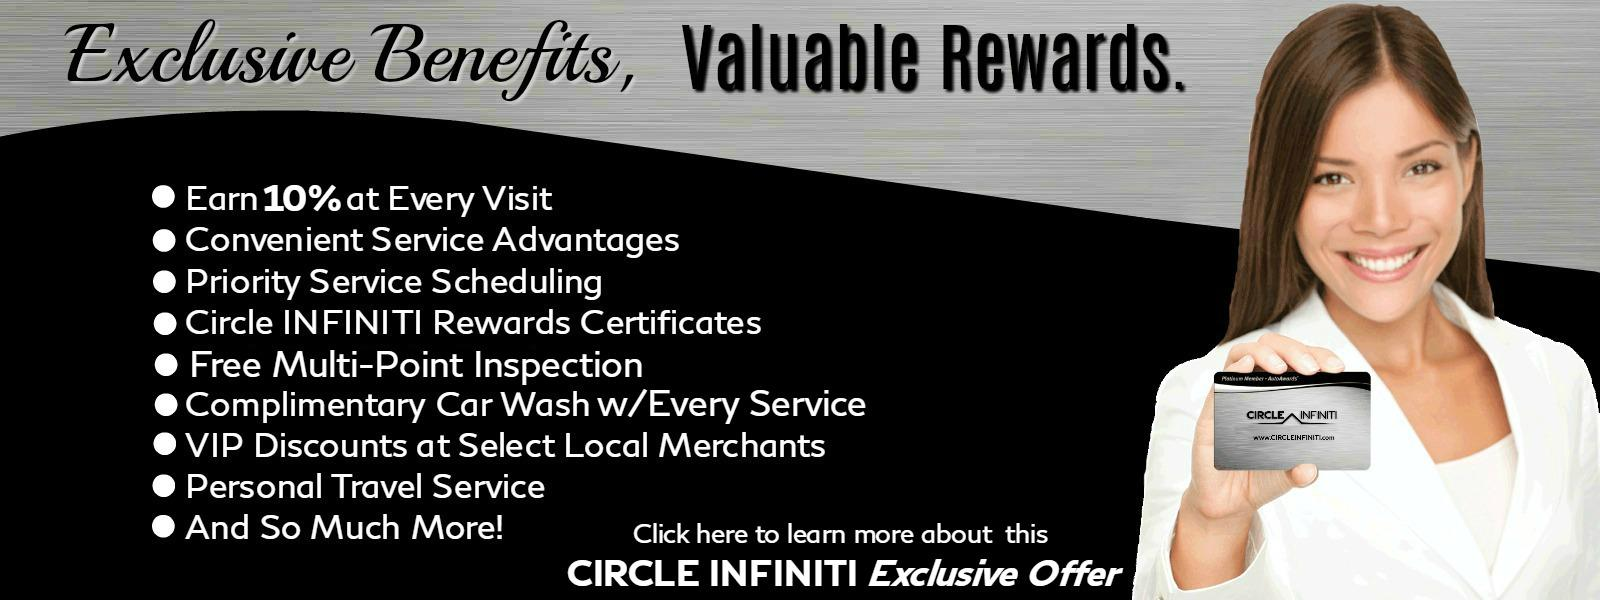 Exclusive Benefits, Valuable Rewards